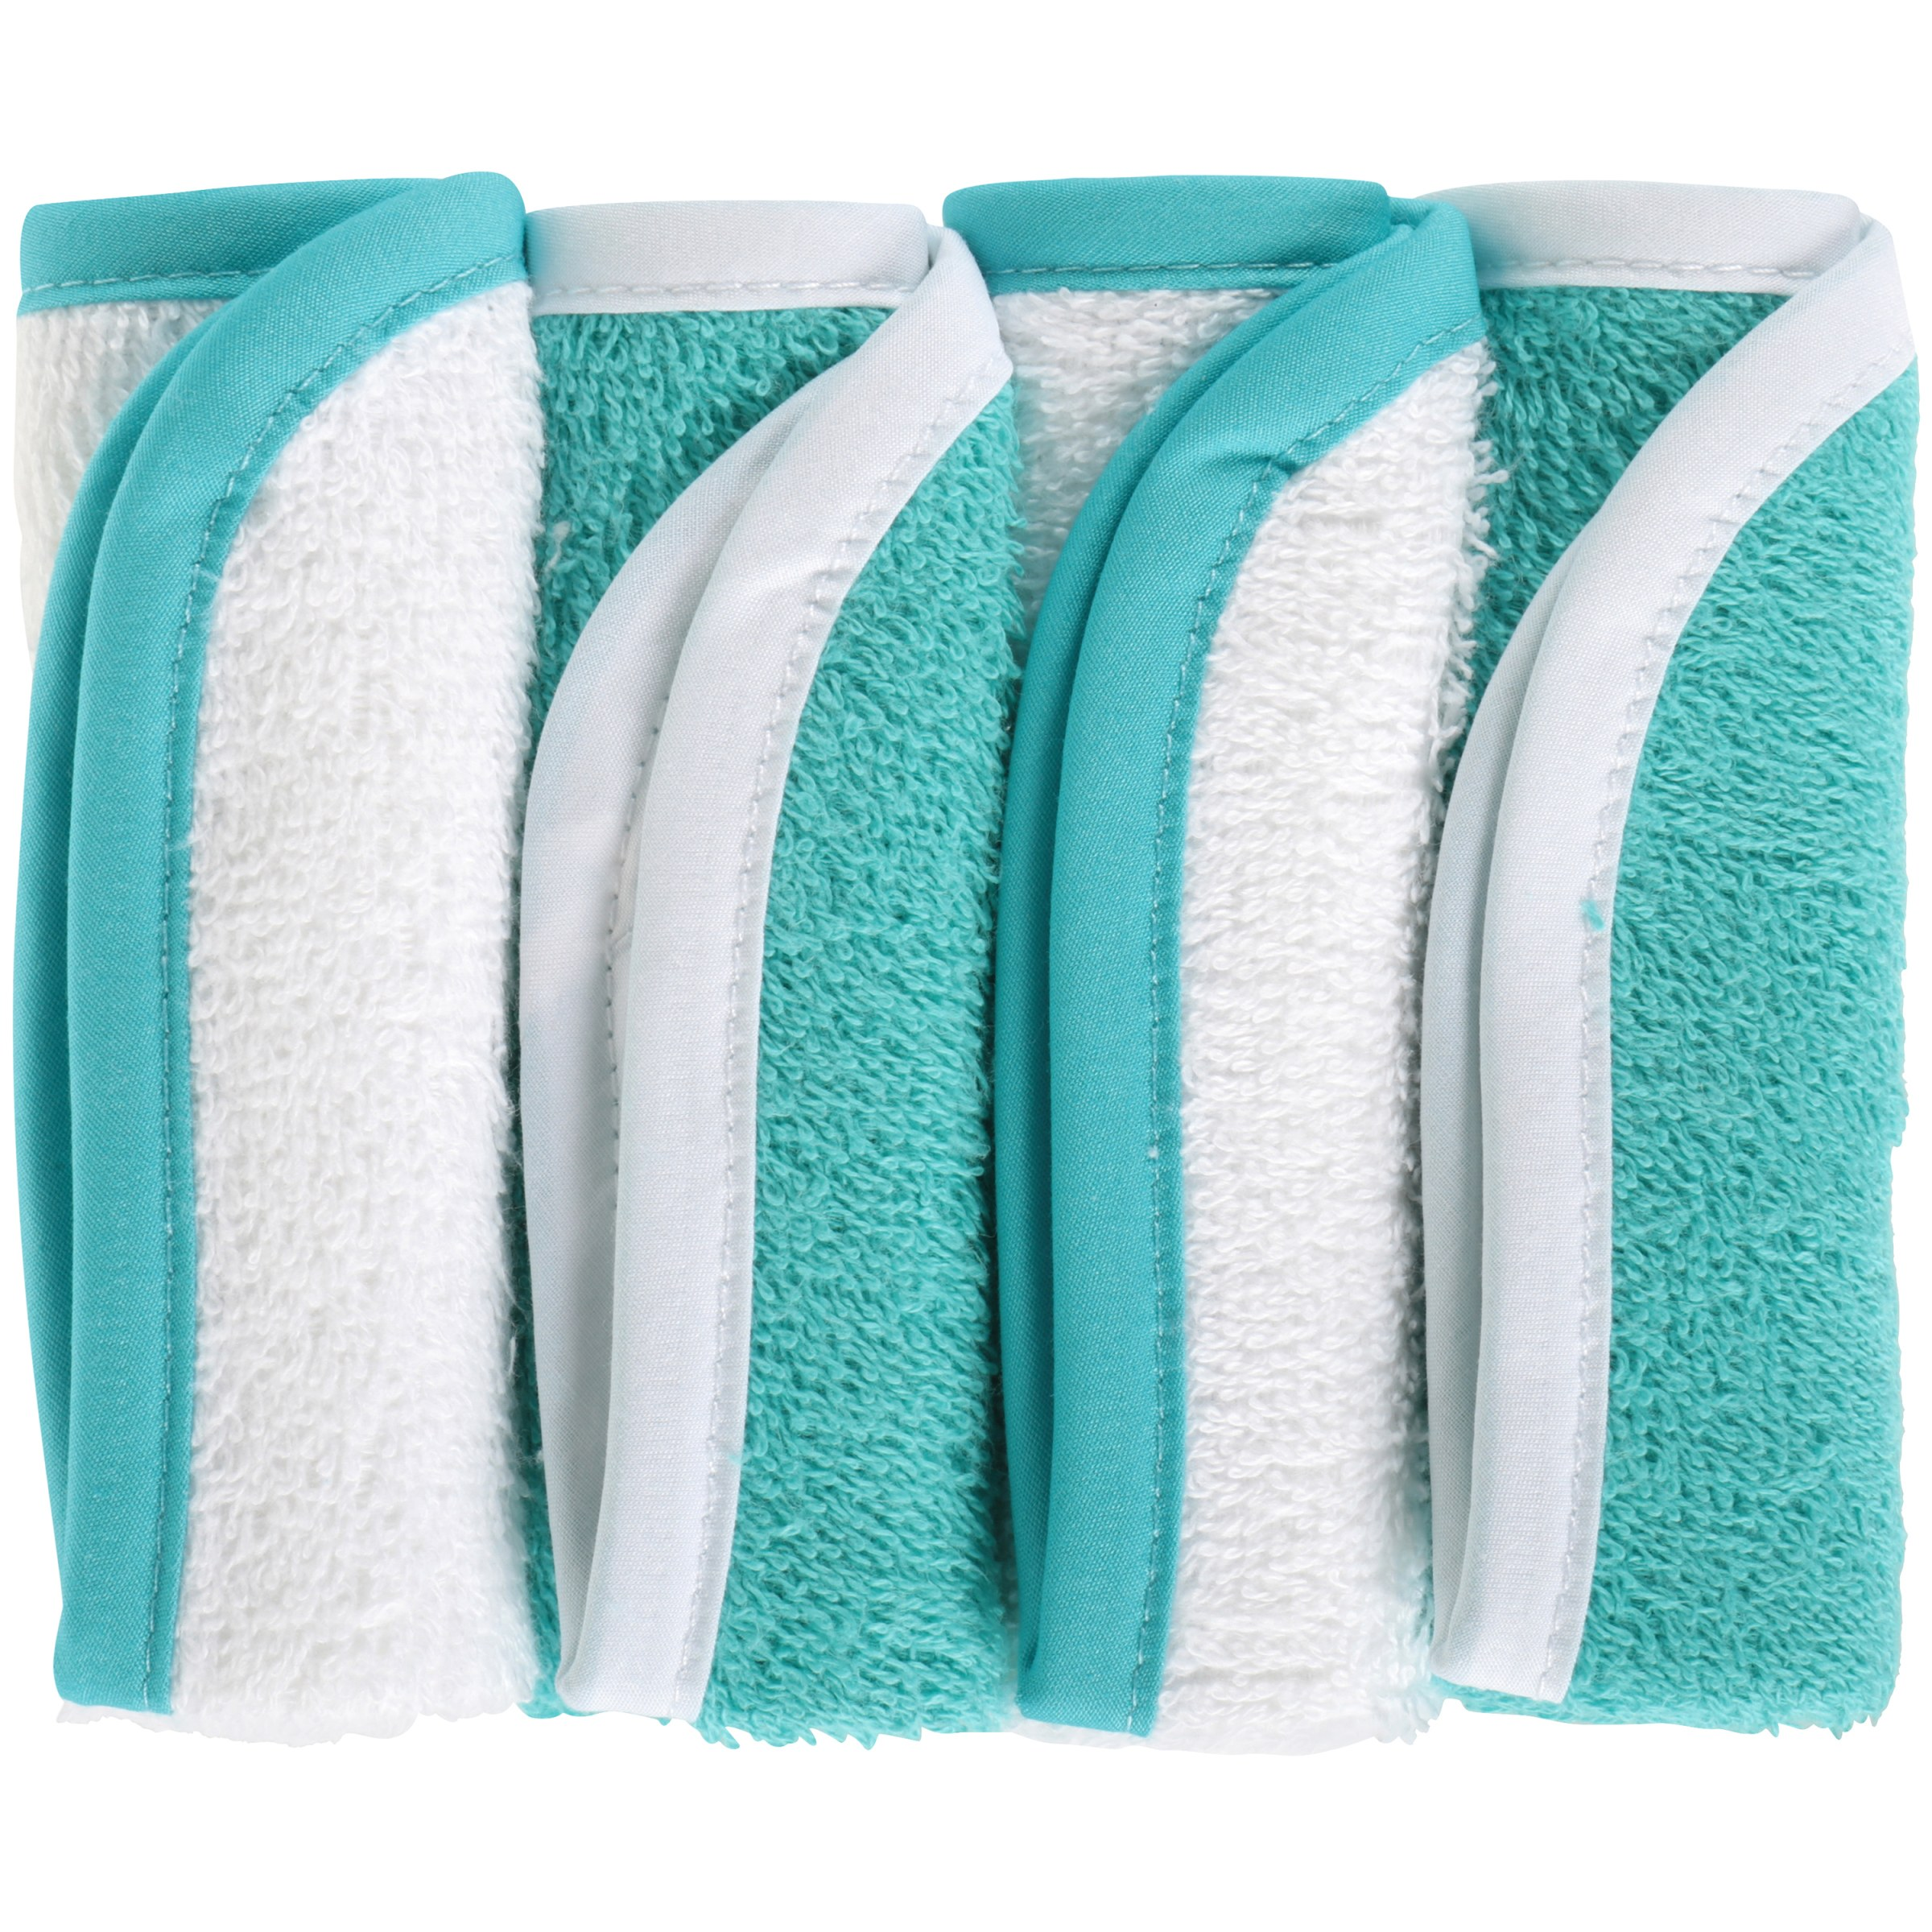 TL Care Aqua Cotton Terry Washcloths 4 ct Pack by American Baby Company